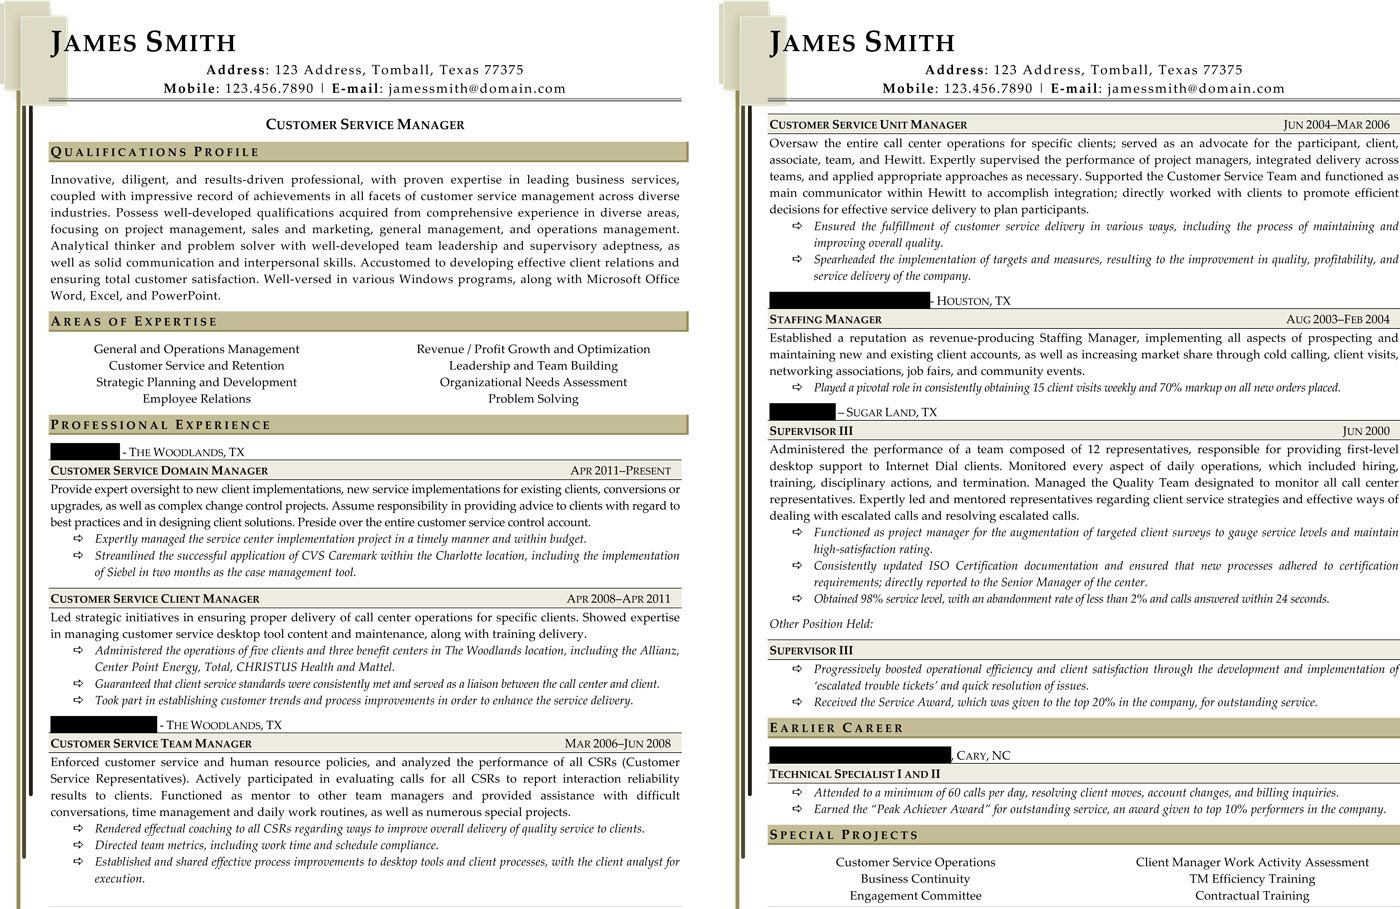 resume Resume Examples For Customer Service Manager skills section writing tips that will attract a hirers eyes customer service manager resume valley template click here